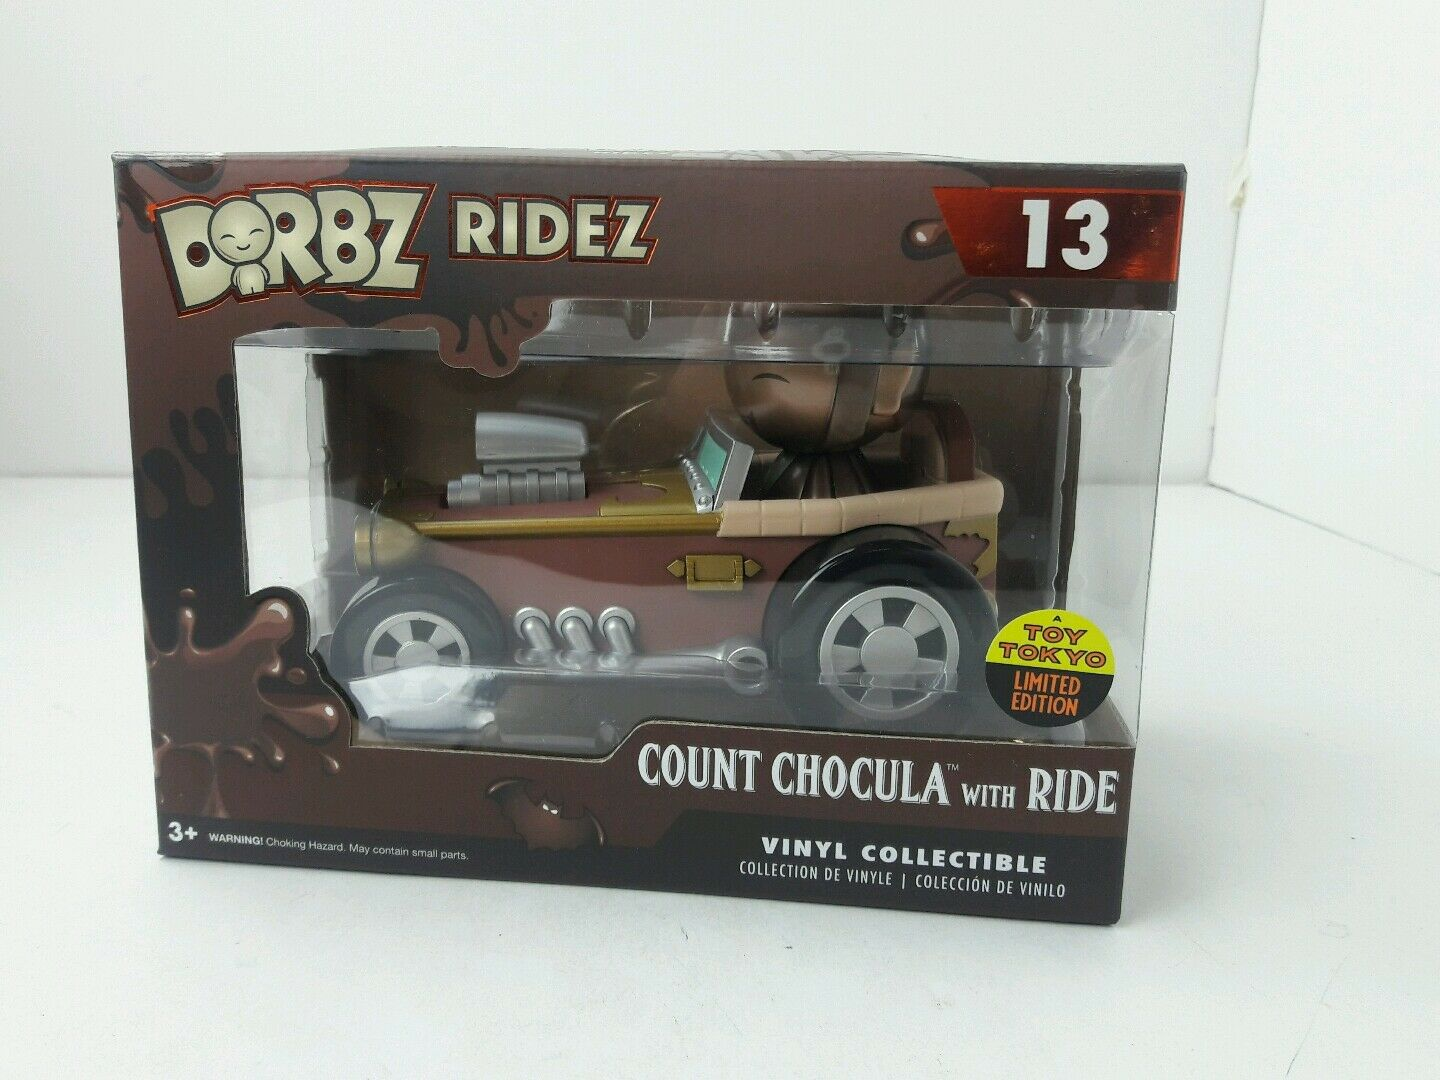 Funko General Mills count chocula dorbz with ride ridez New York Comic Con 2016